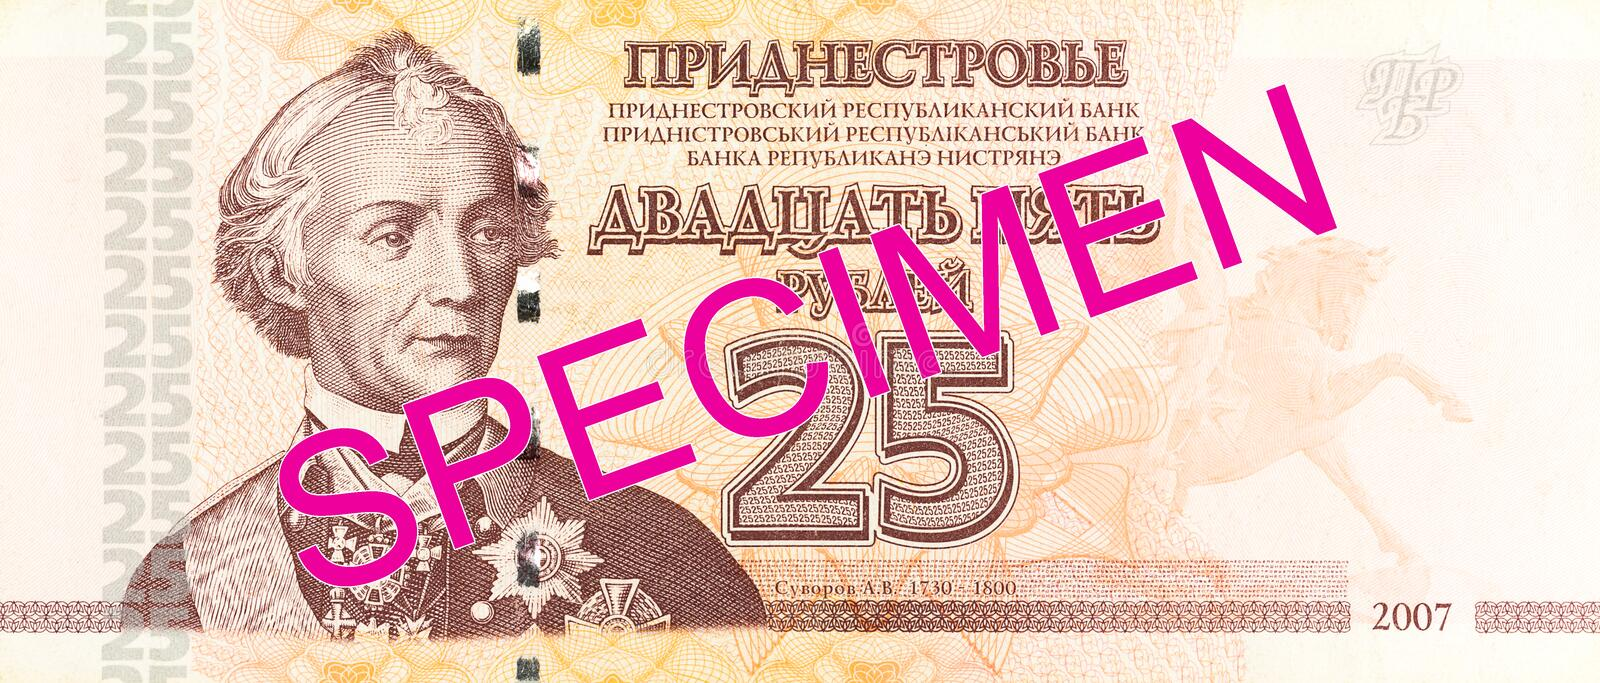 25 transnistrian ruble banknote obverse specimen. Single 25 transnistrian ruble banknote obverse specimen royalty free stock images